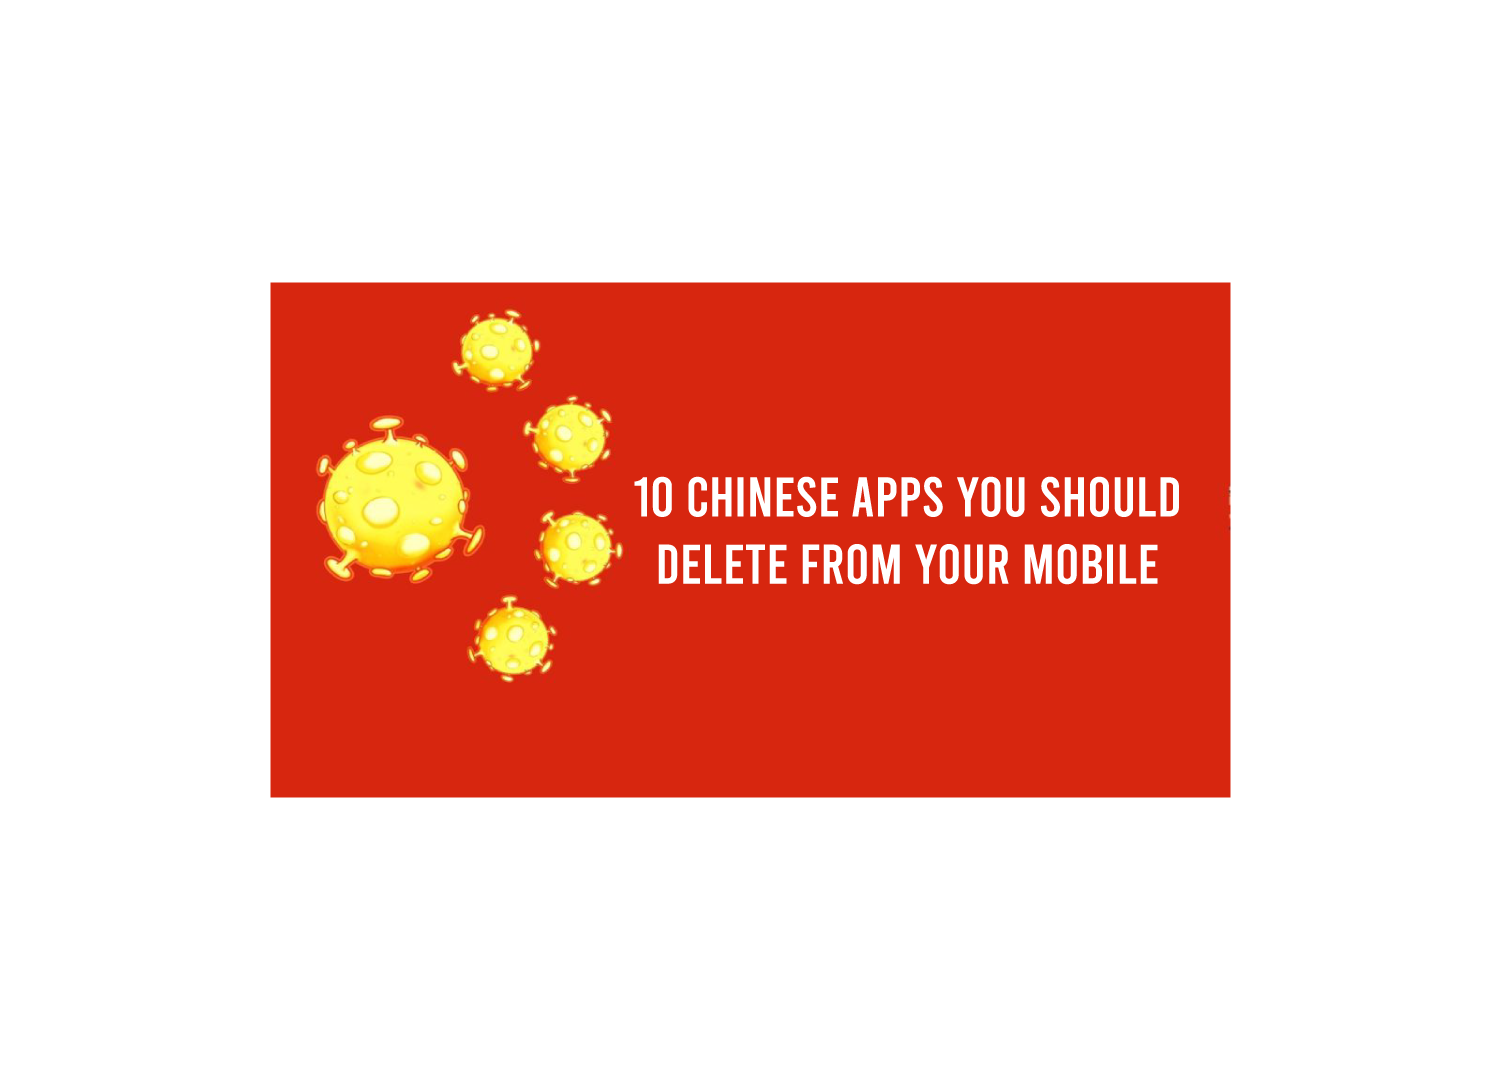 10 Chinese Apps You Should Delete From Your Mobile